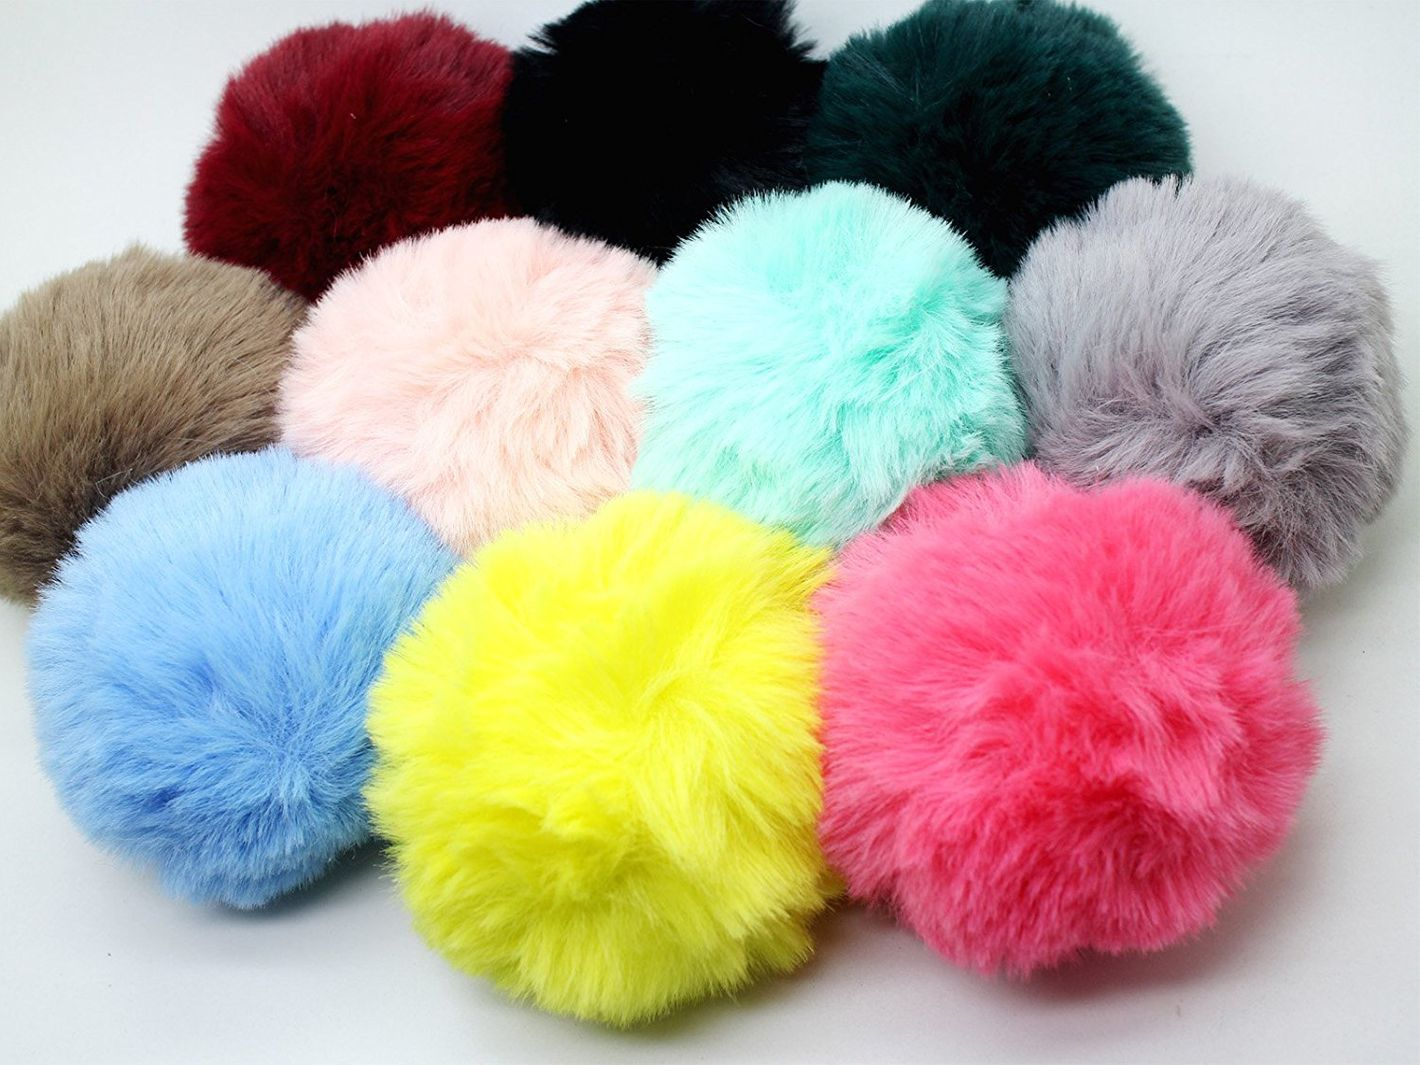 Soft Faux Rabbit Fur Pom Poms, Set of 10